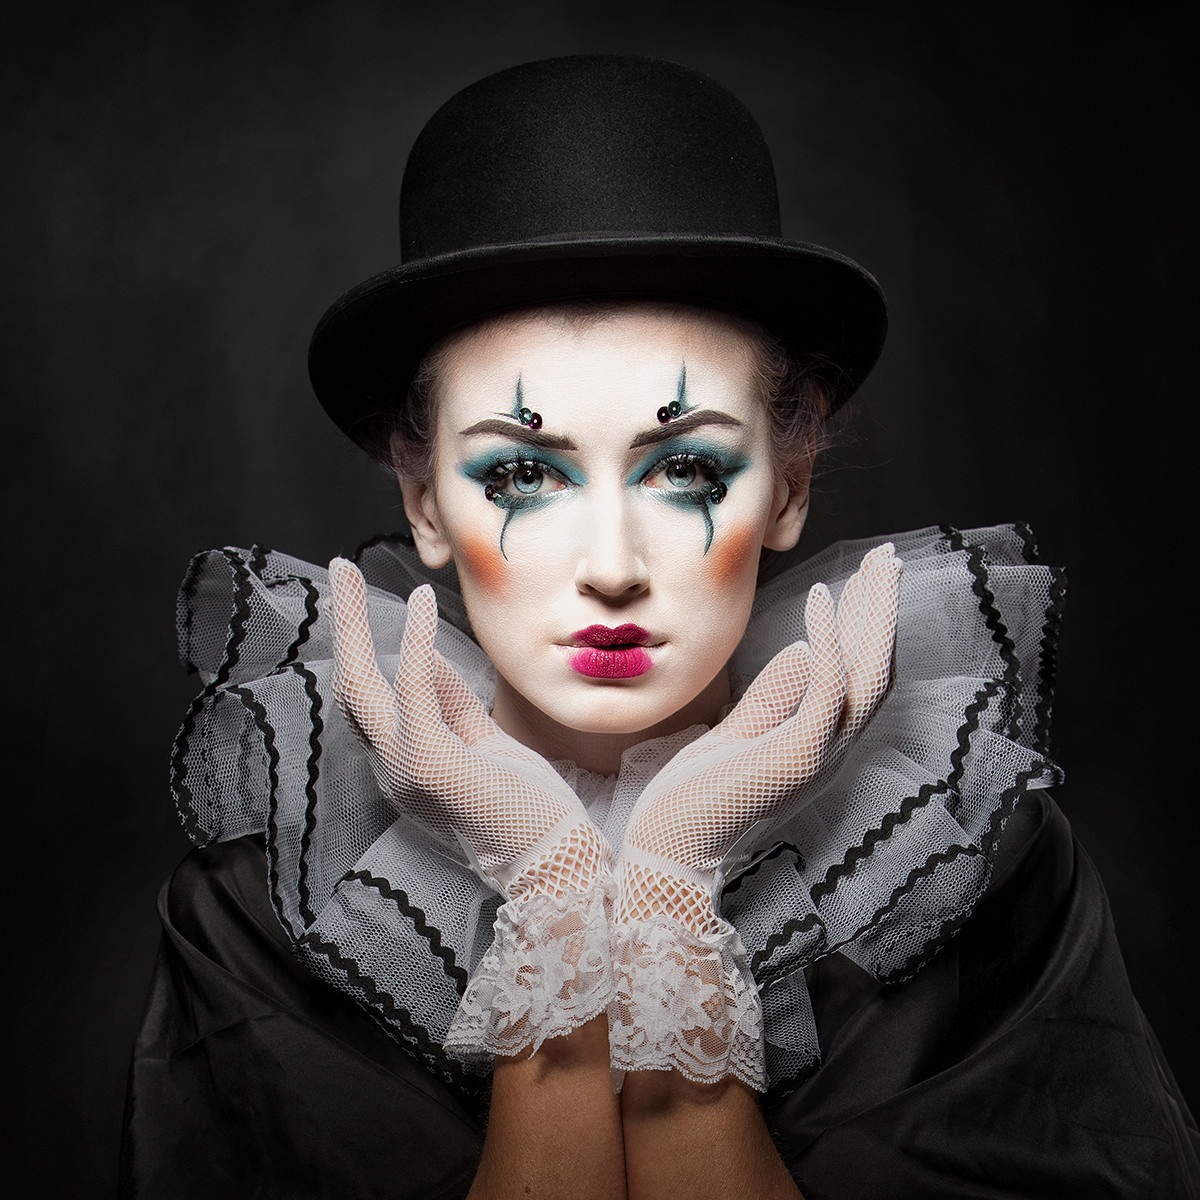 'Mask of the Clown' by Peter Adams (11 marks)  -  Catchlight Camera Club